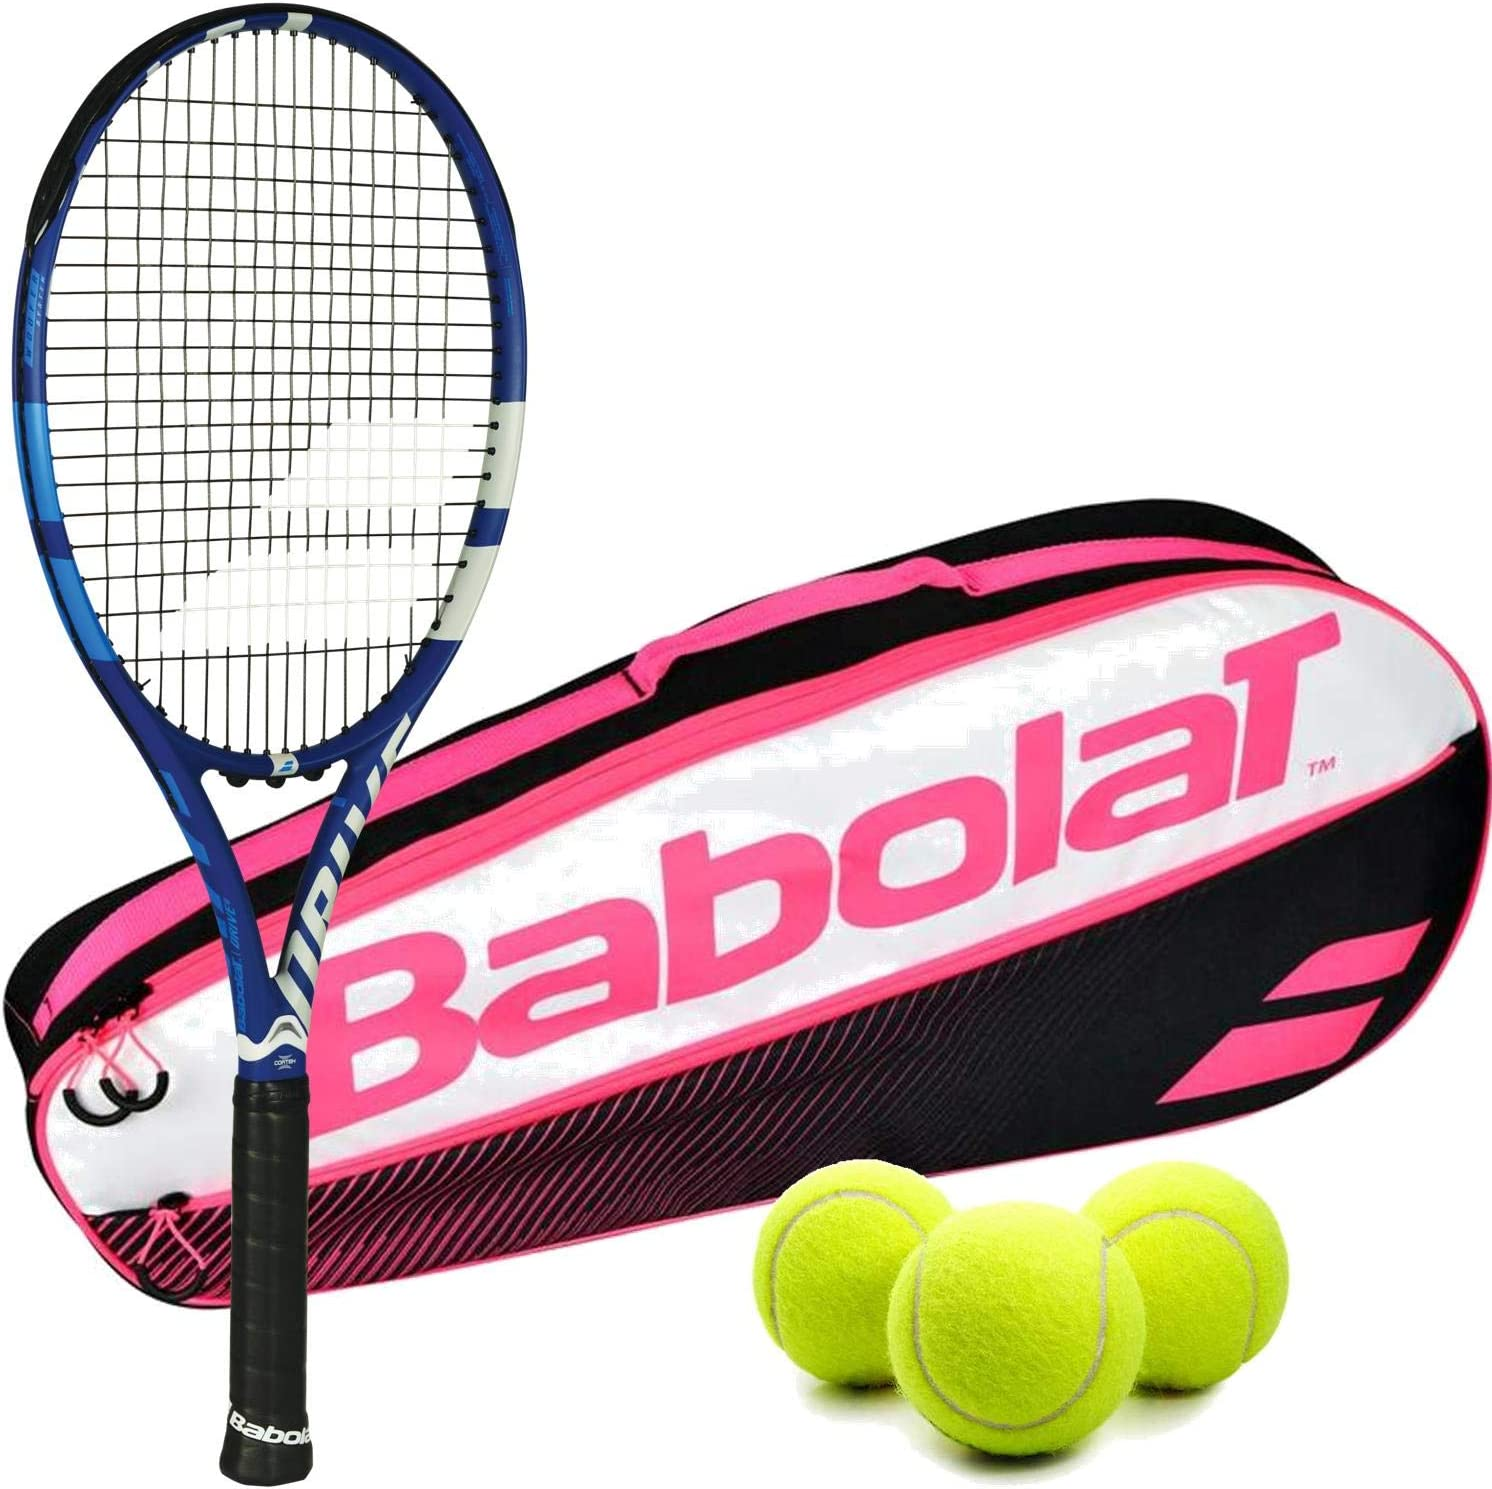 Babolat Drive Game (Drive G) テニスラケットキット Babolat Club テニスラケットバッグとテニスボール3個入り1缶付き ピンク 3 Pack Bag 4 1/8 Inch Grip